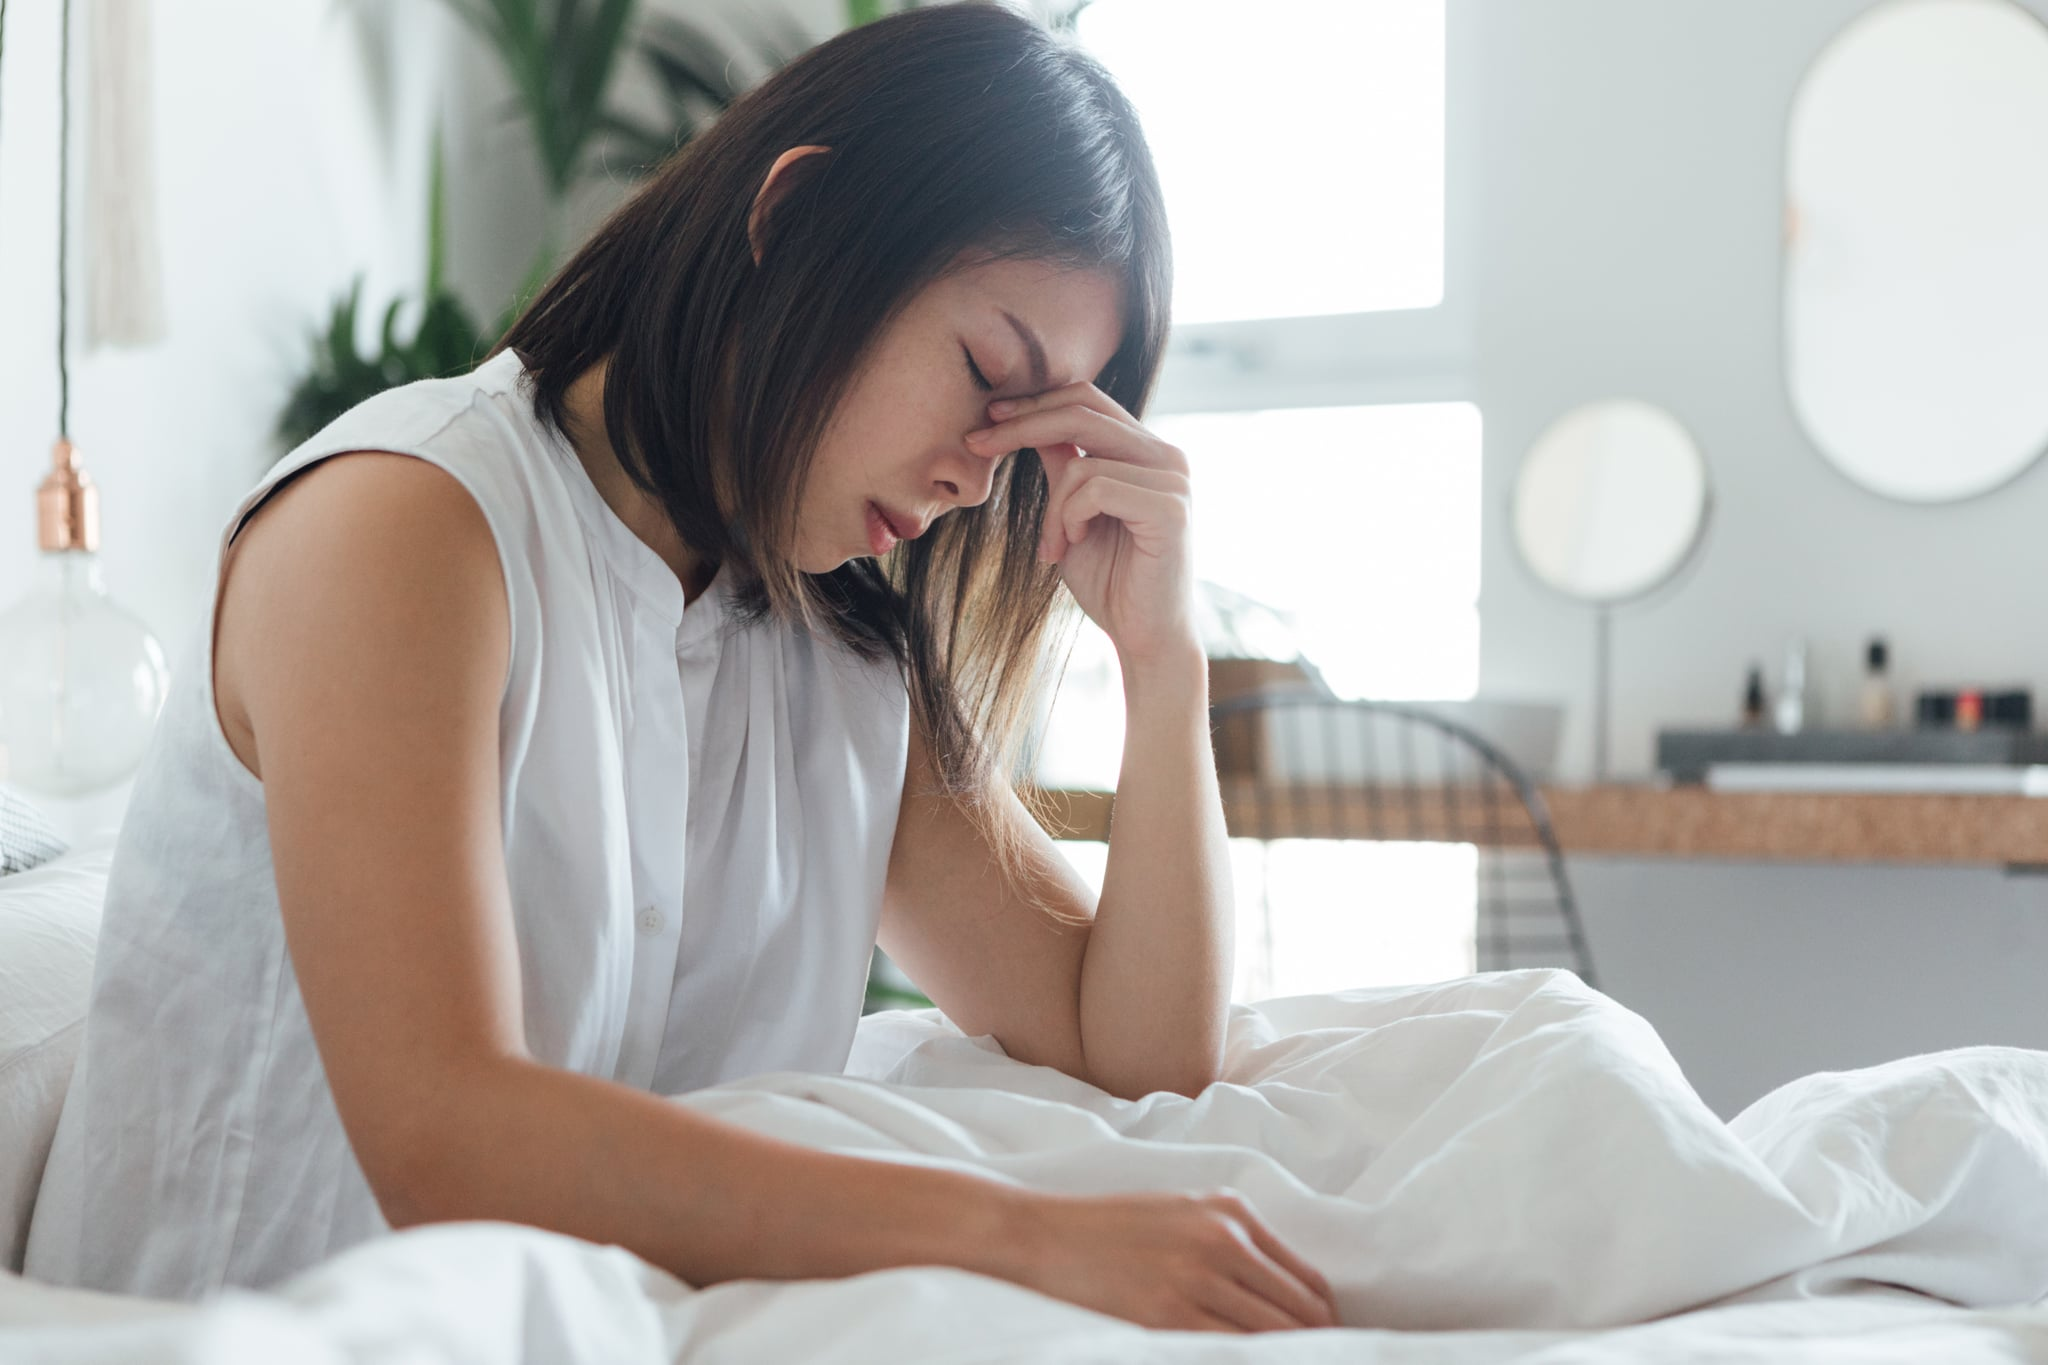 Young woman touching bridge of nose to relieve headache while resting in bed.